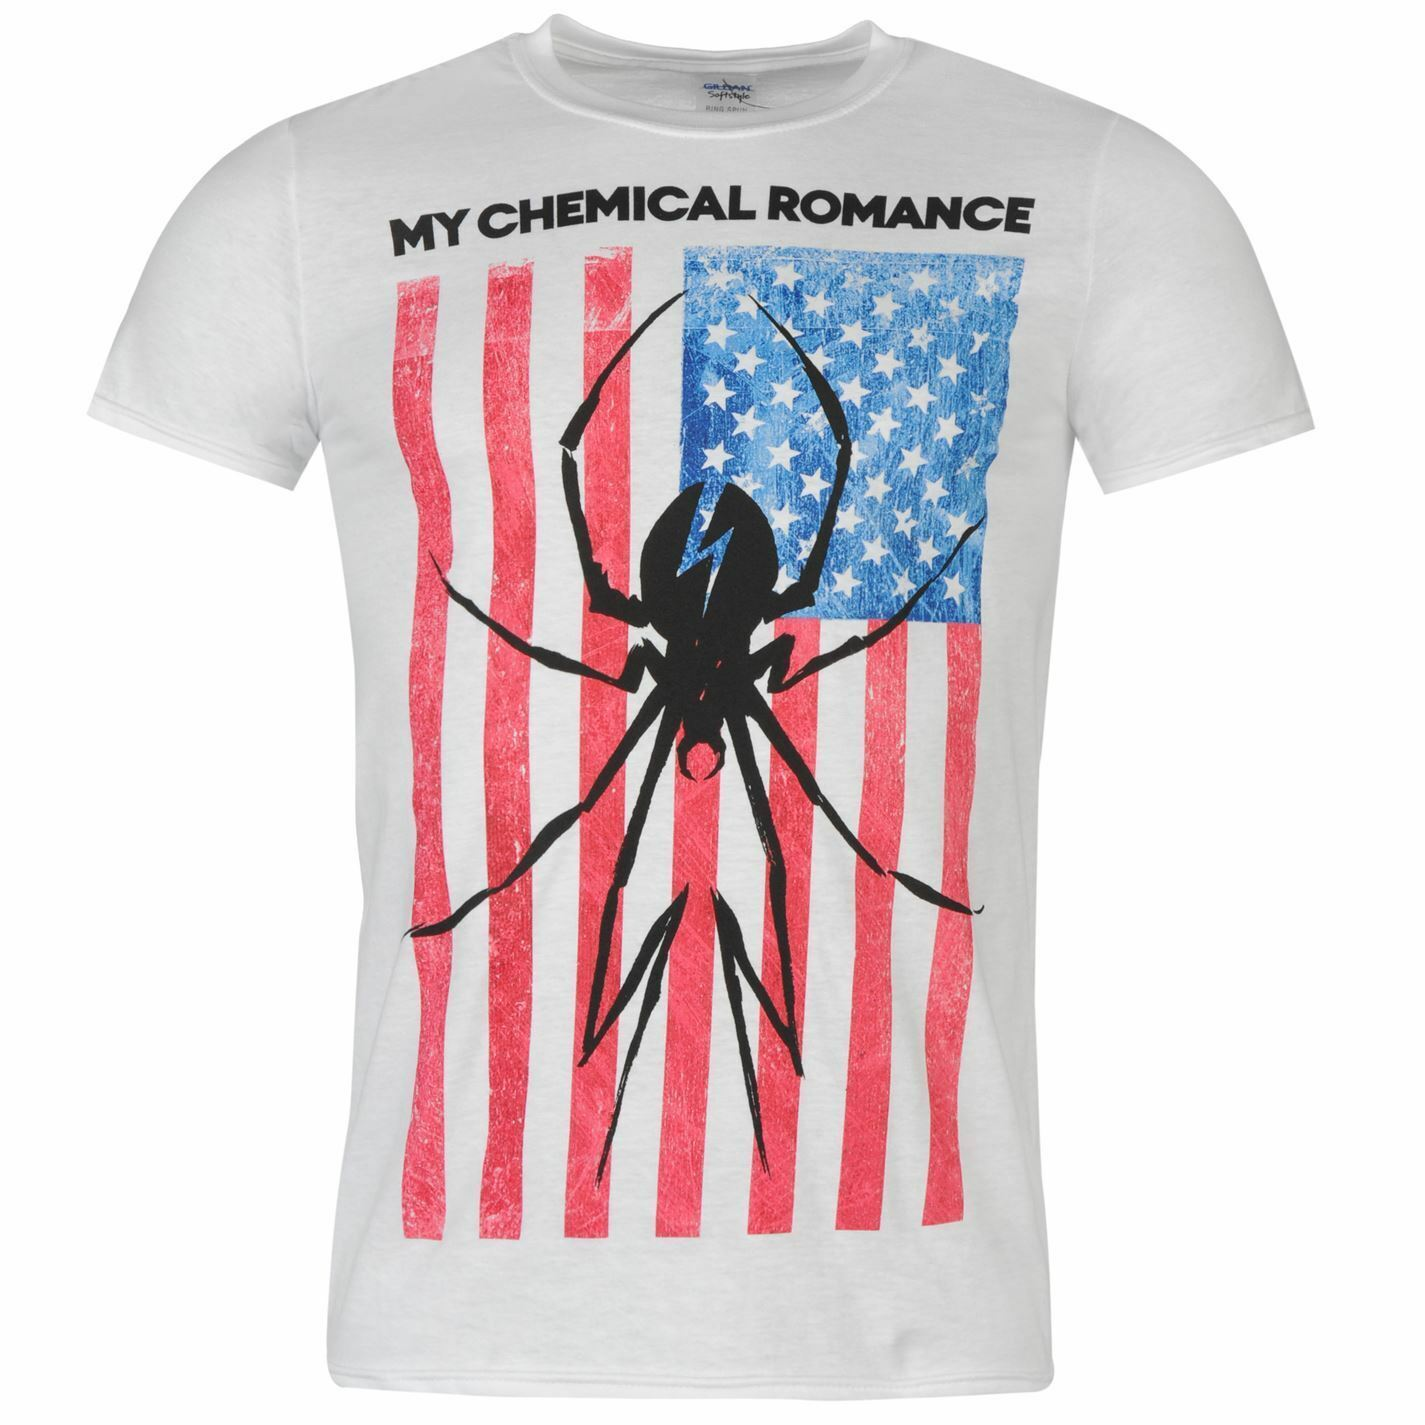 My Chemical Romance Flag Spider T-Shirt Mens White Casual Wear Top Tee Shirt